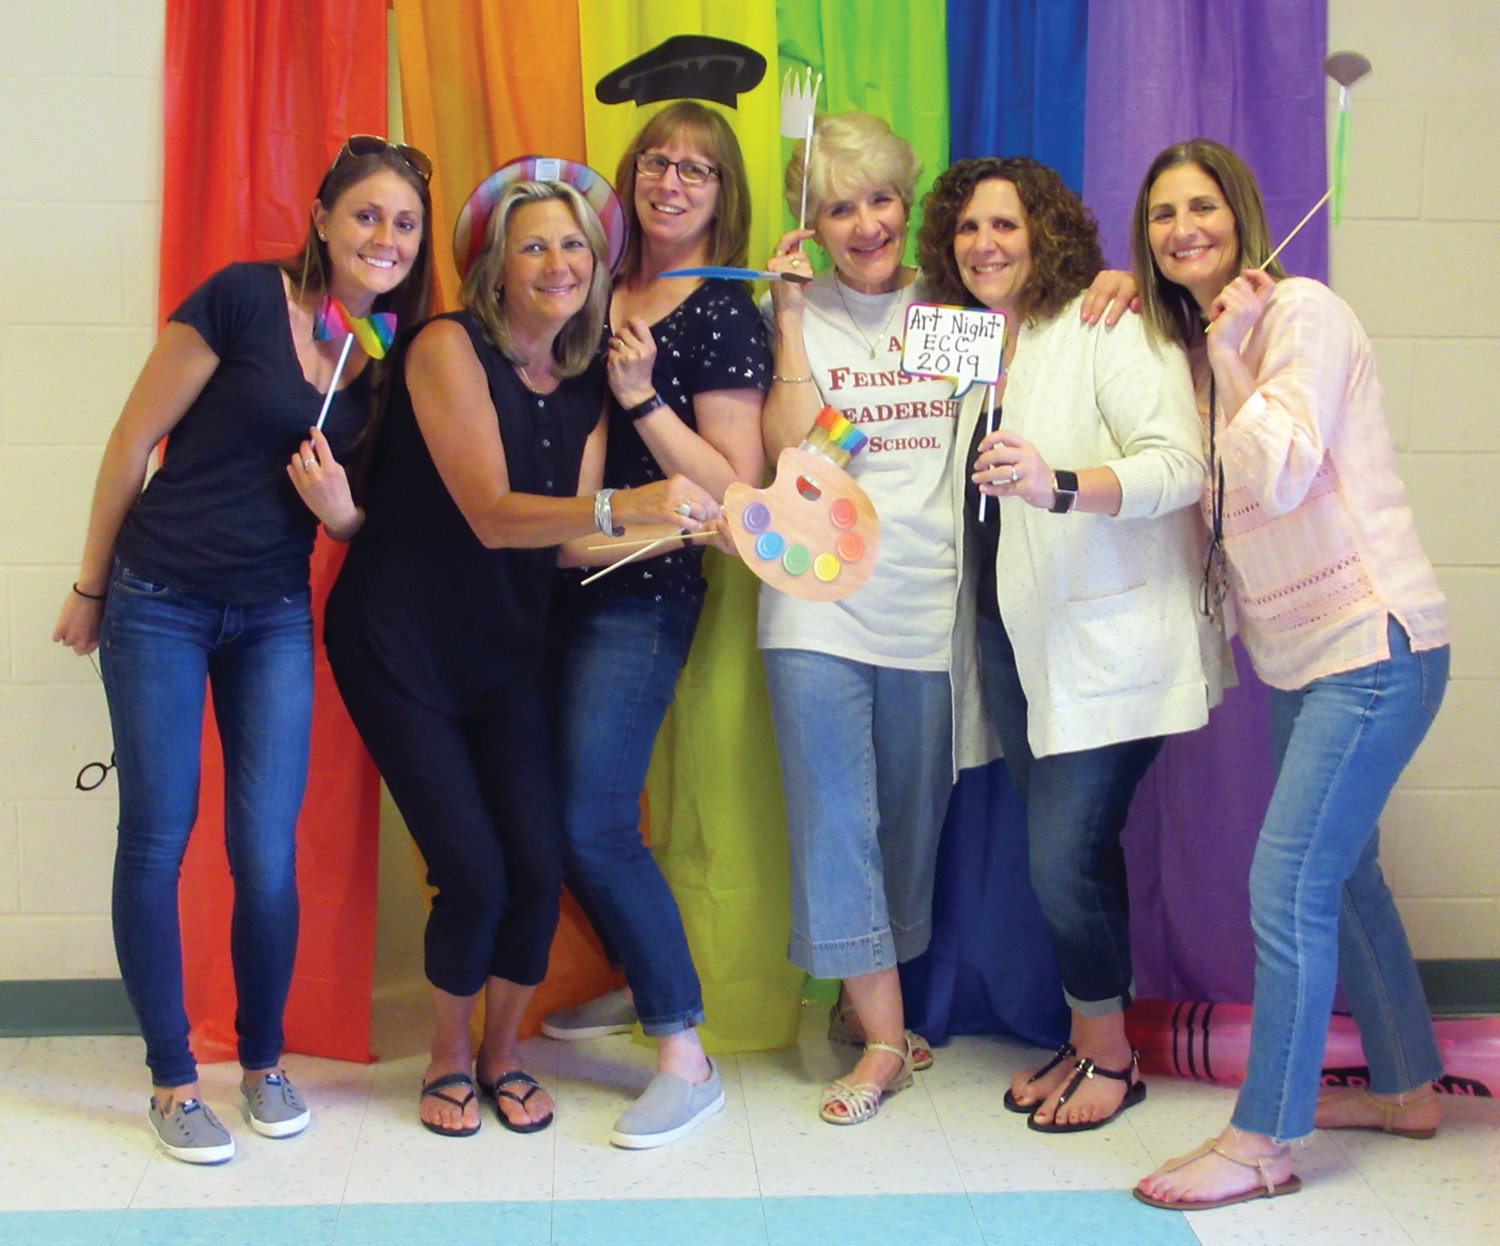 TEACHER'S TAKE: ECC teachers Lauren Cardillo, Pat Cardillo, Cathy Alber, Bonnie Duhamel, Toni Lynch and Lori Auteillo ham it up during their visit to the ECC's photo booth, which was a huge hit during Friday night's art show.